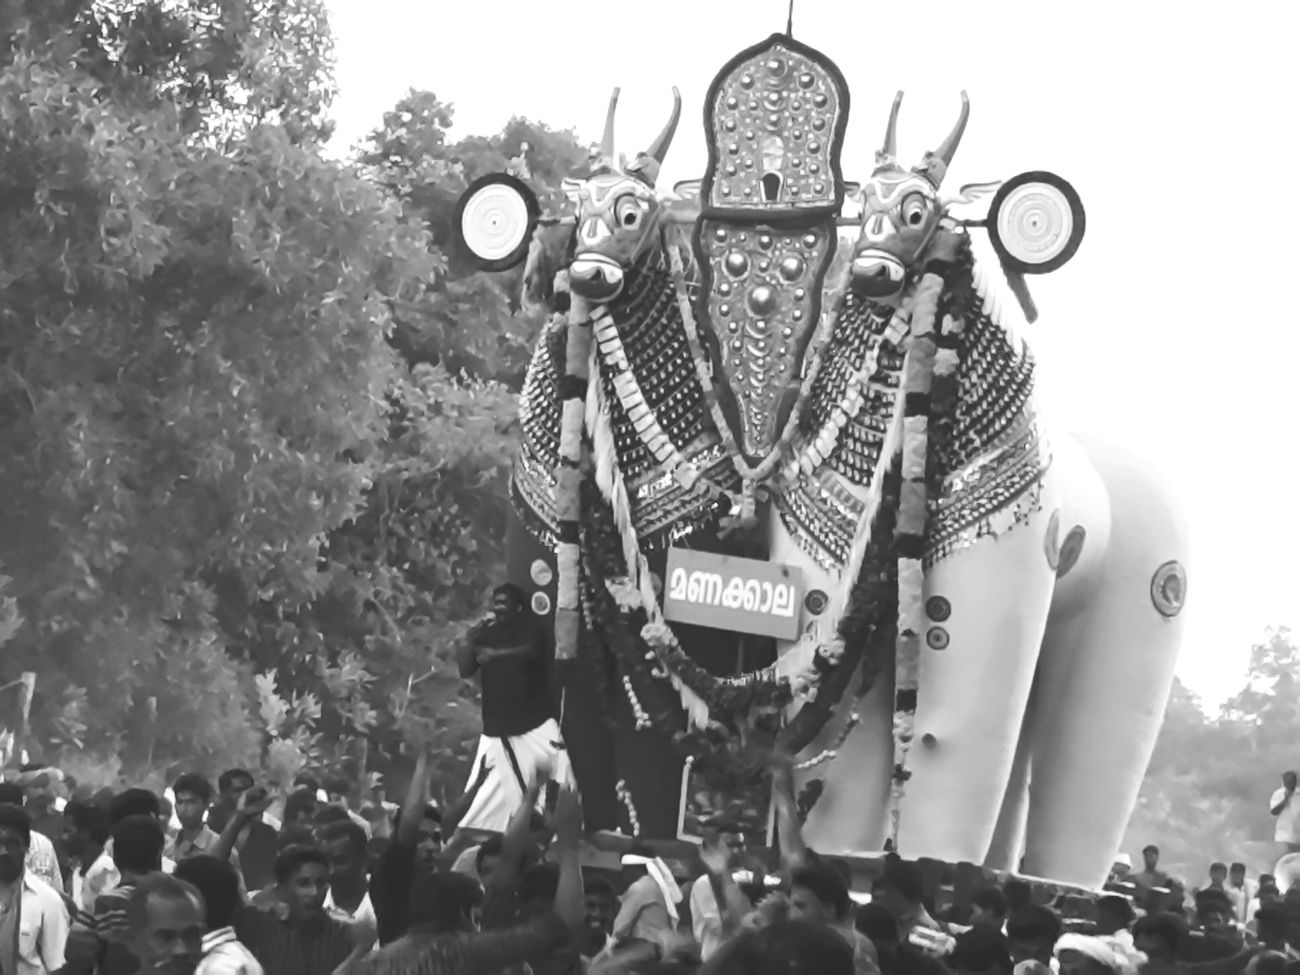 My Country In A Photo Kerala India 8MP Photography Eyeem India - Kerala (god's Own Country ) Hindu Cultural Festival @kerala